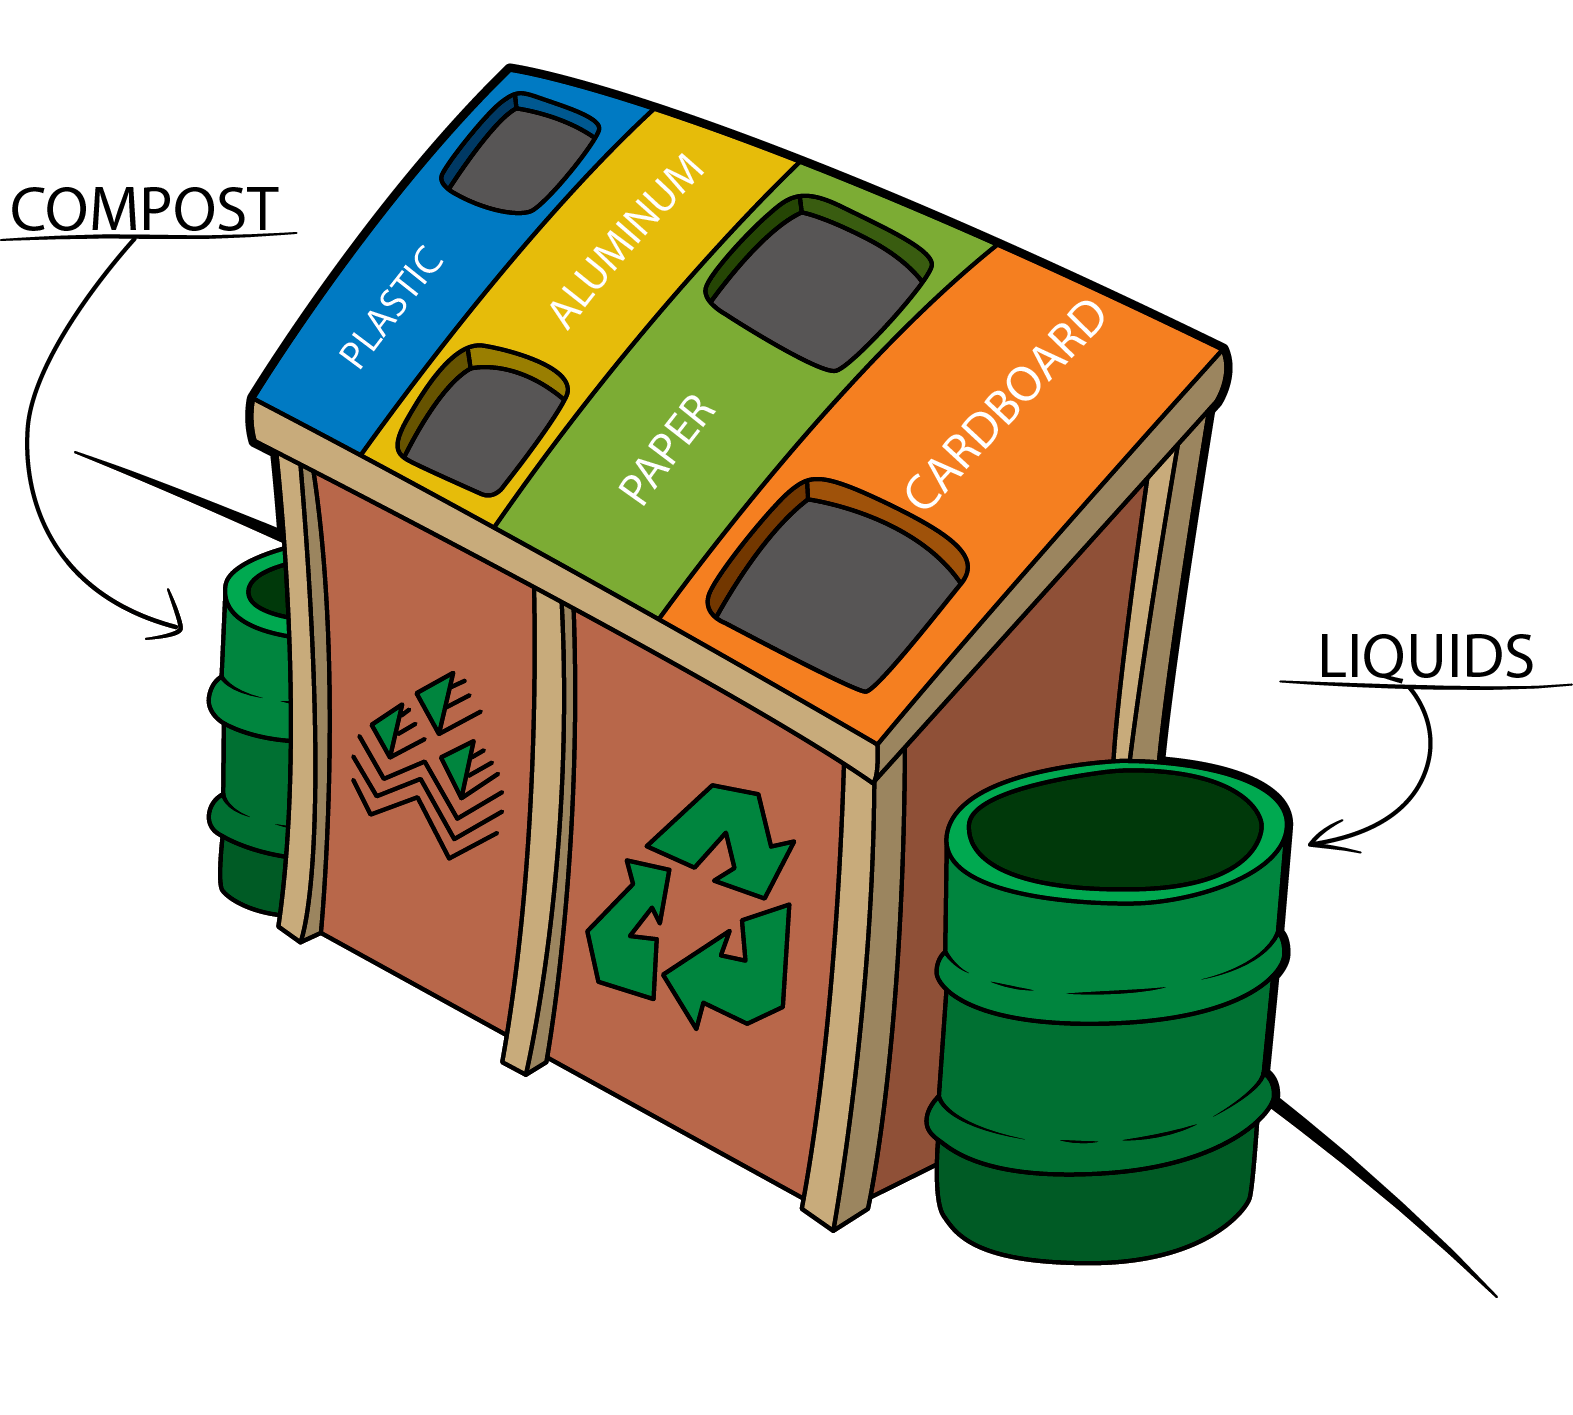 Recycling-Bin-Illustration.png